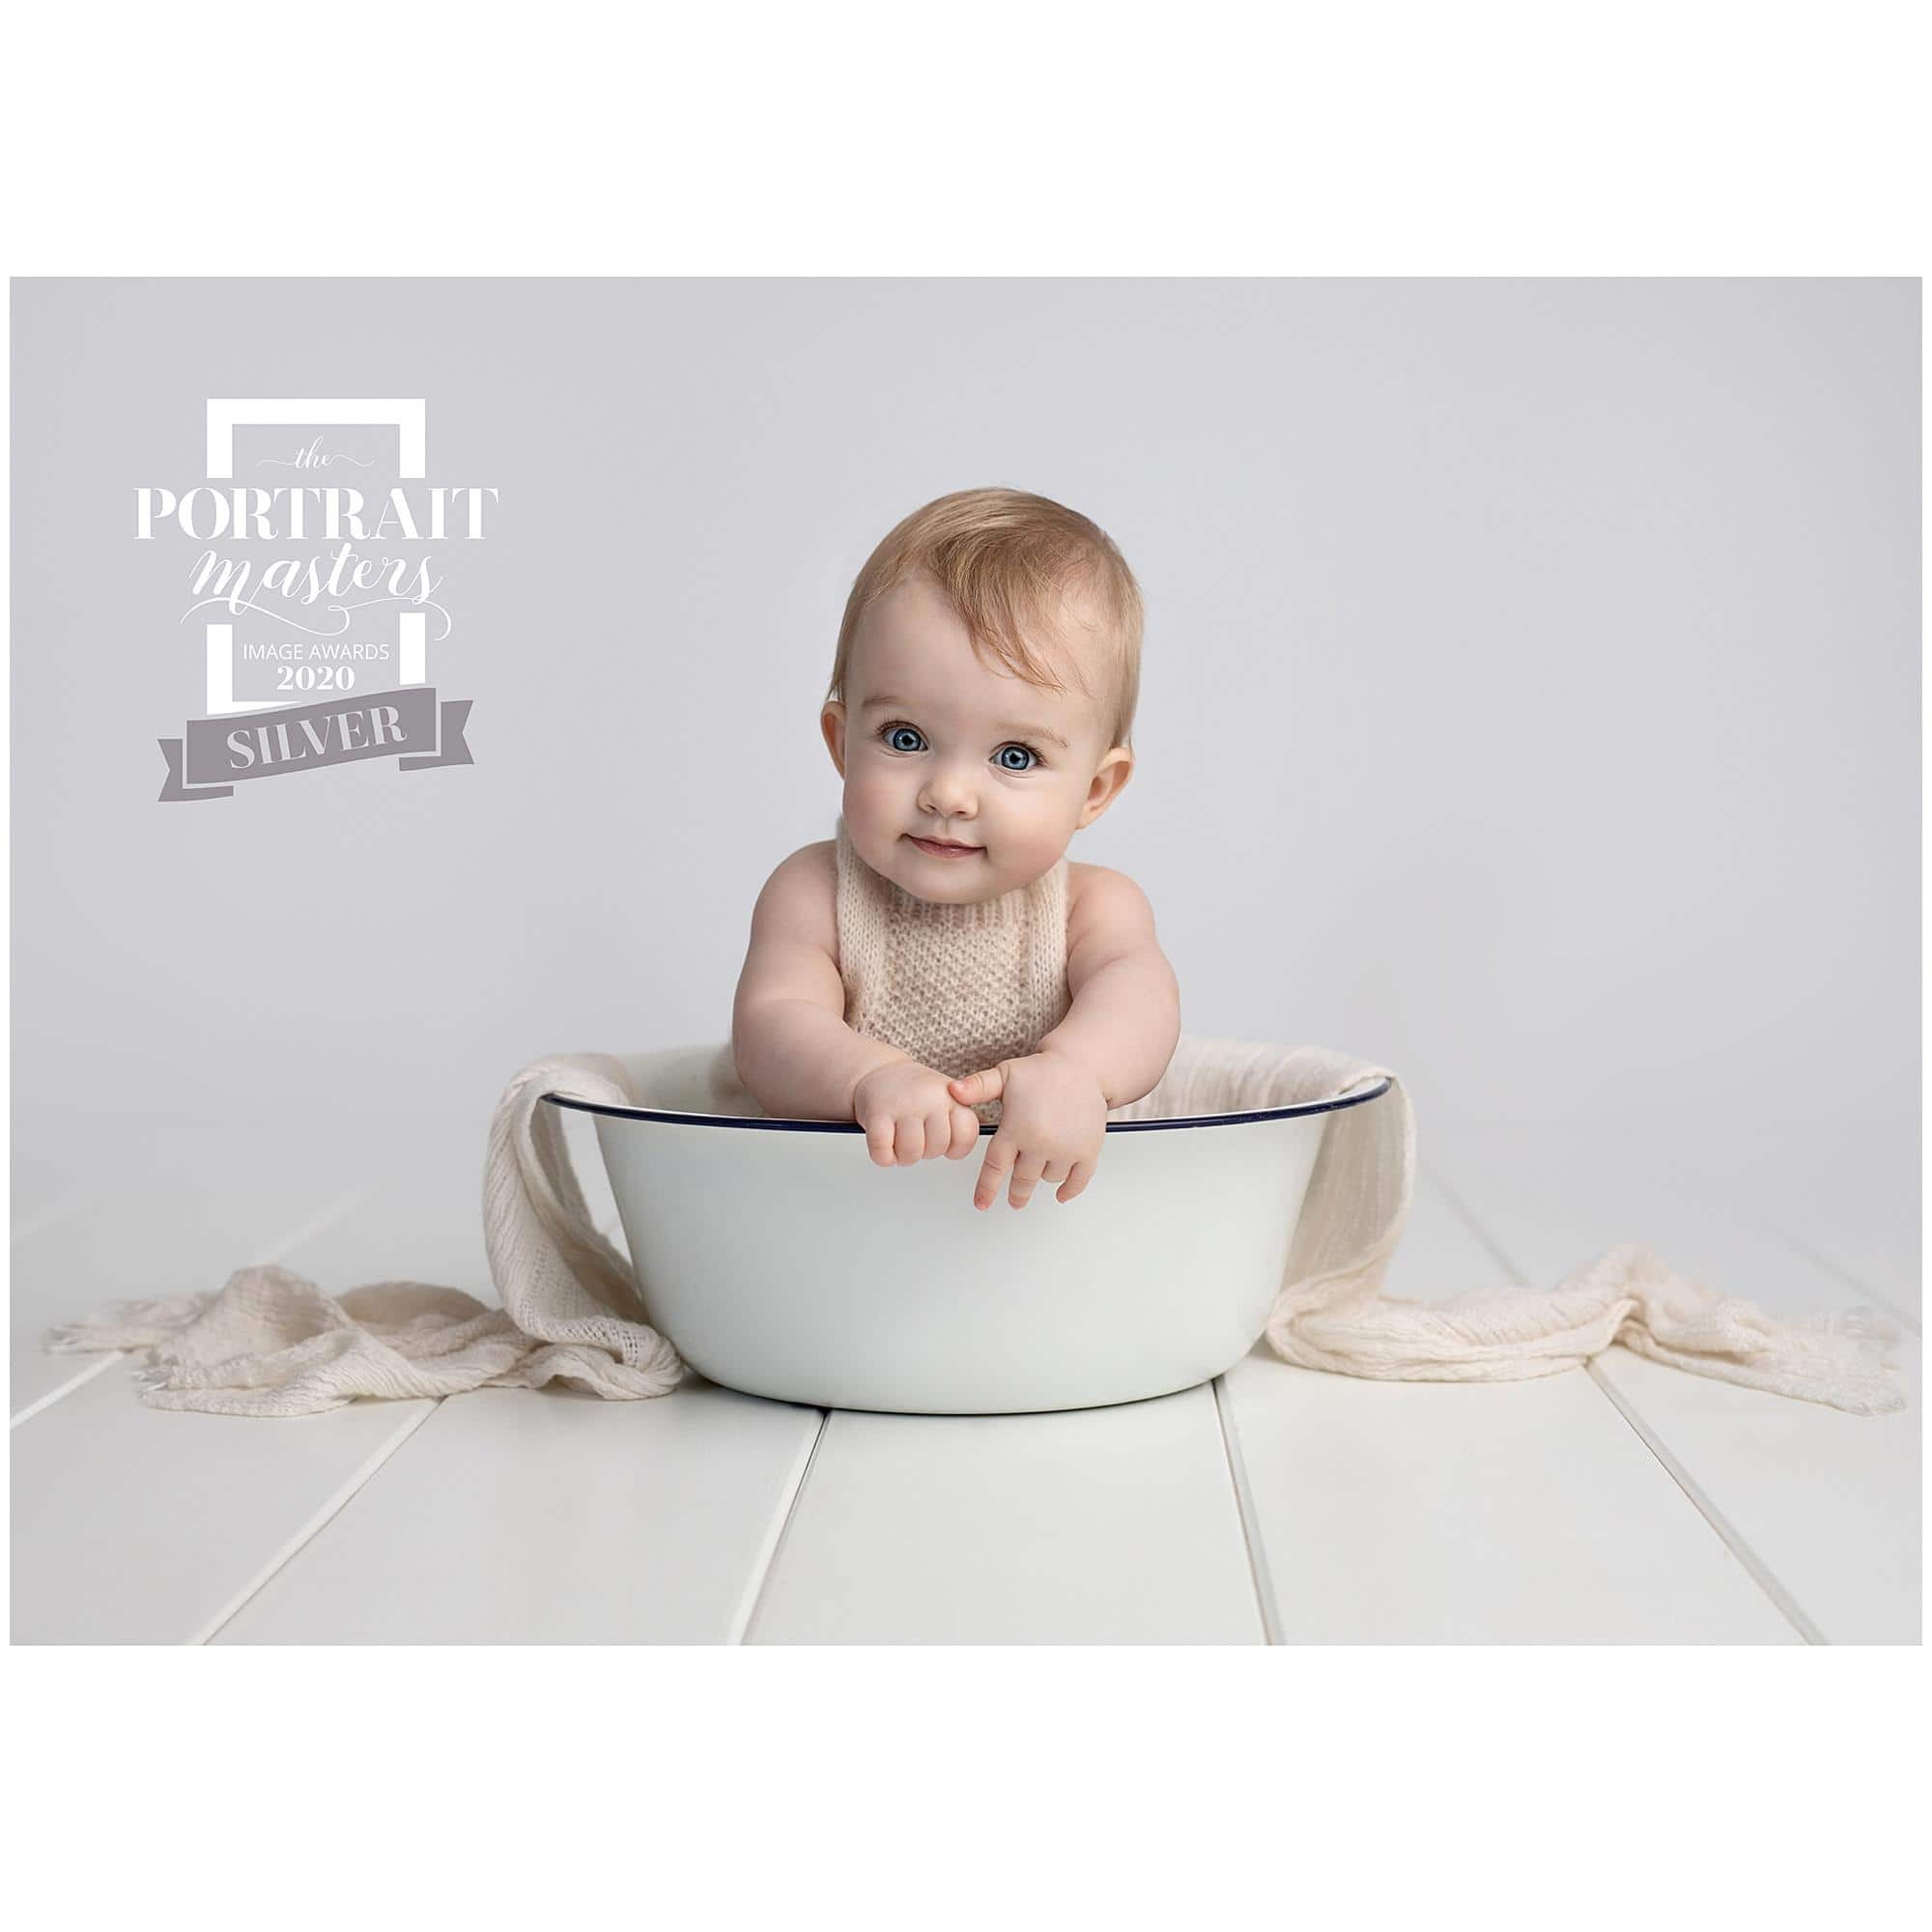 Smiling baby in a white bowl wins a Silver Award in the Portrait Masters 2020 Competition